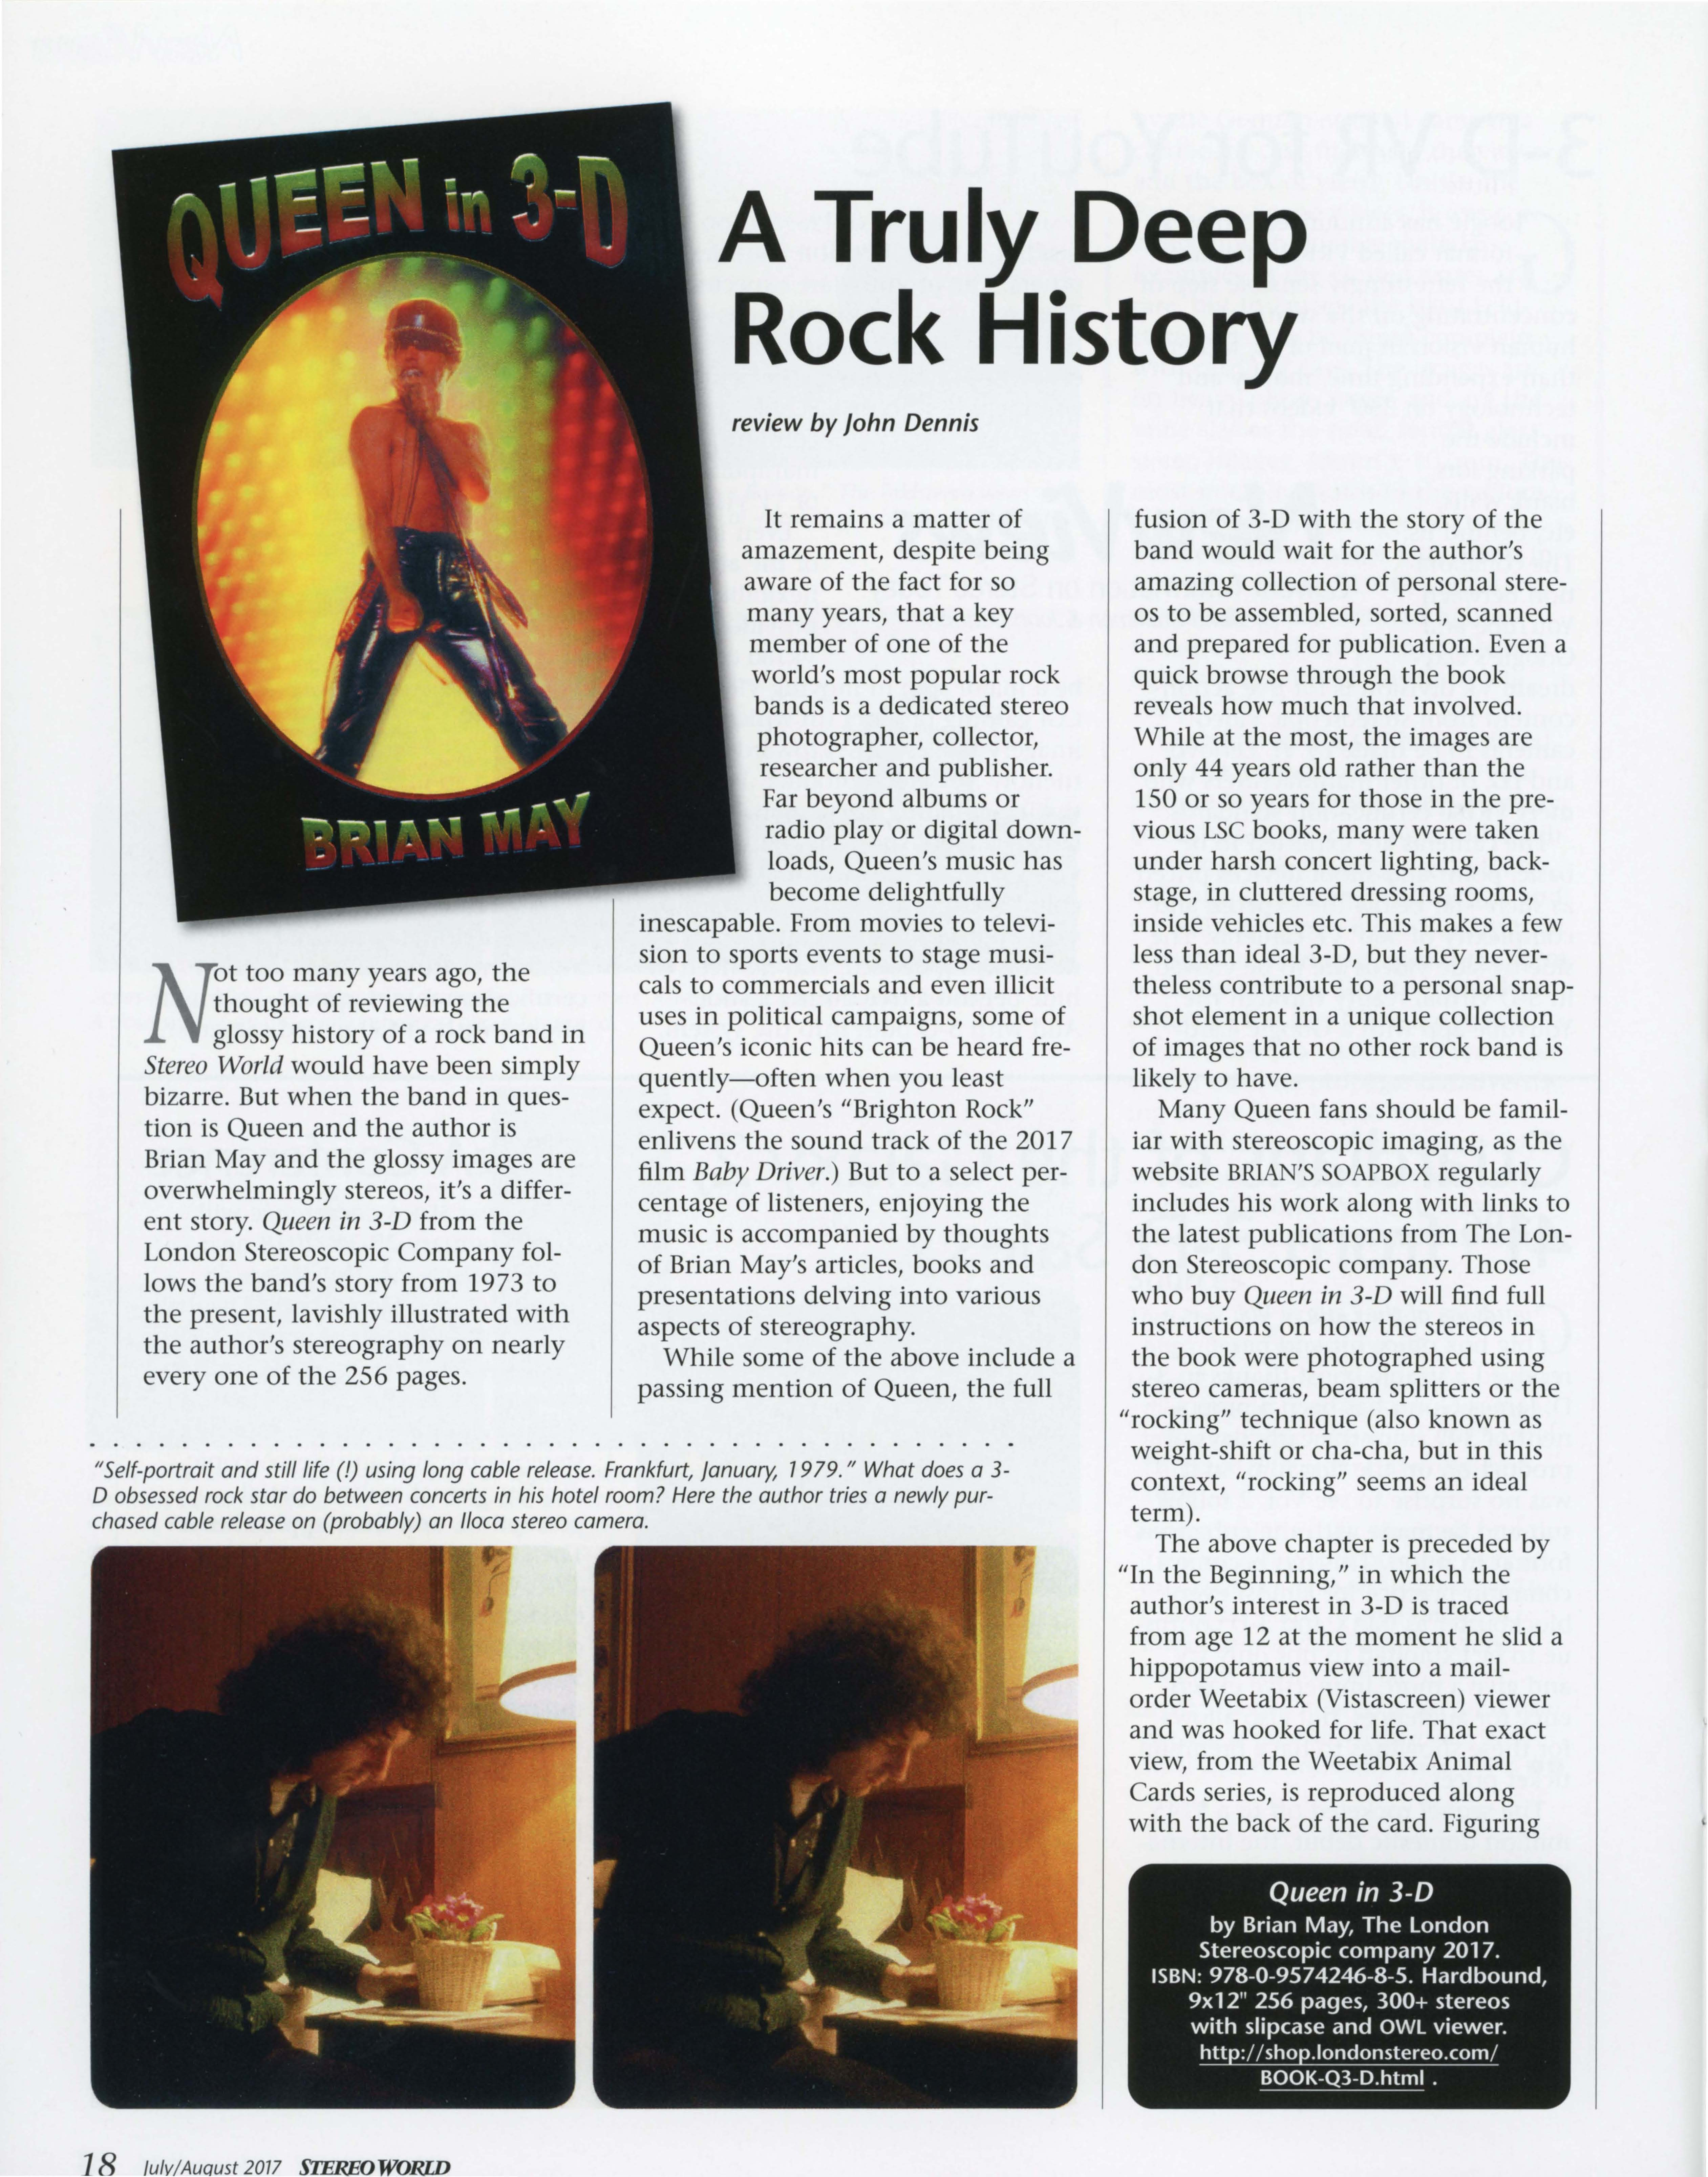 Stereo World Jul/Aug 2017 A Truly Deep Rock History p18